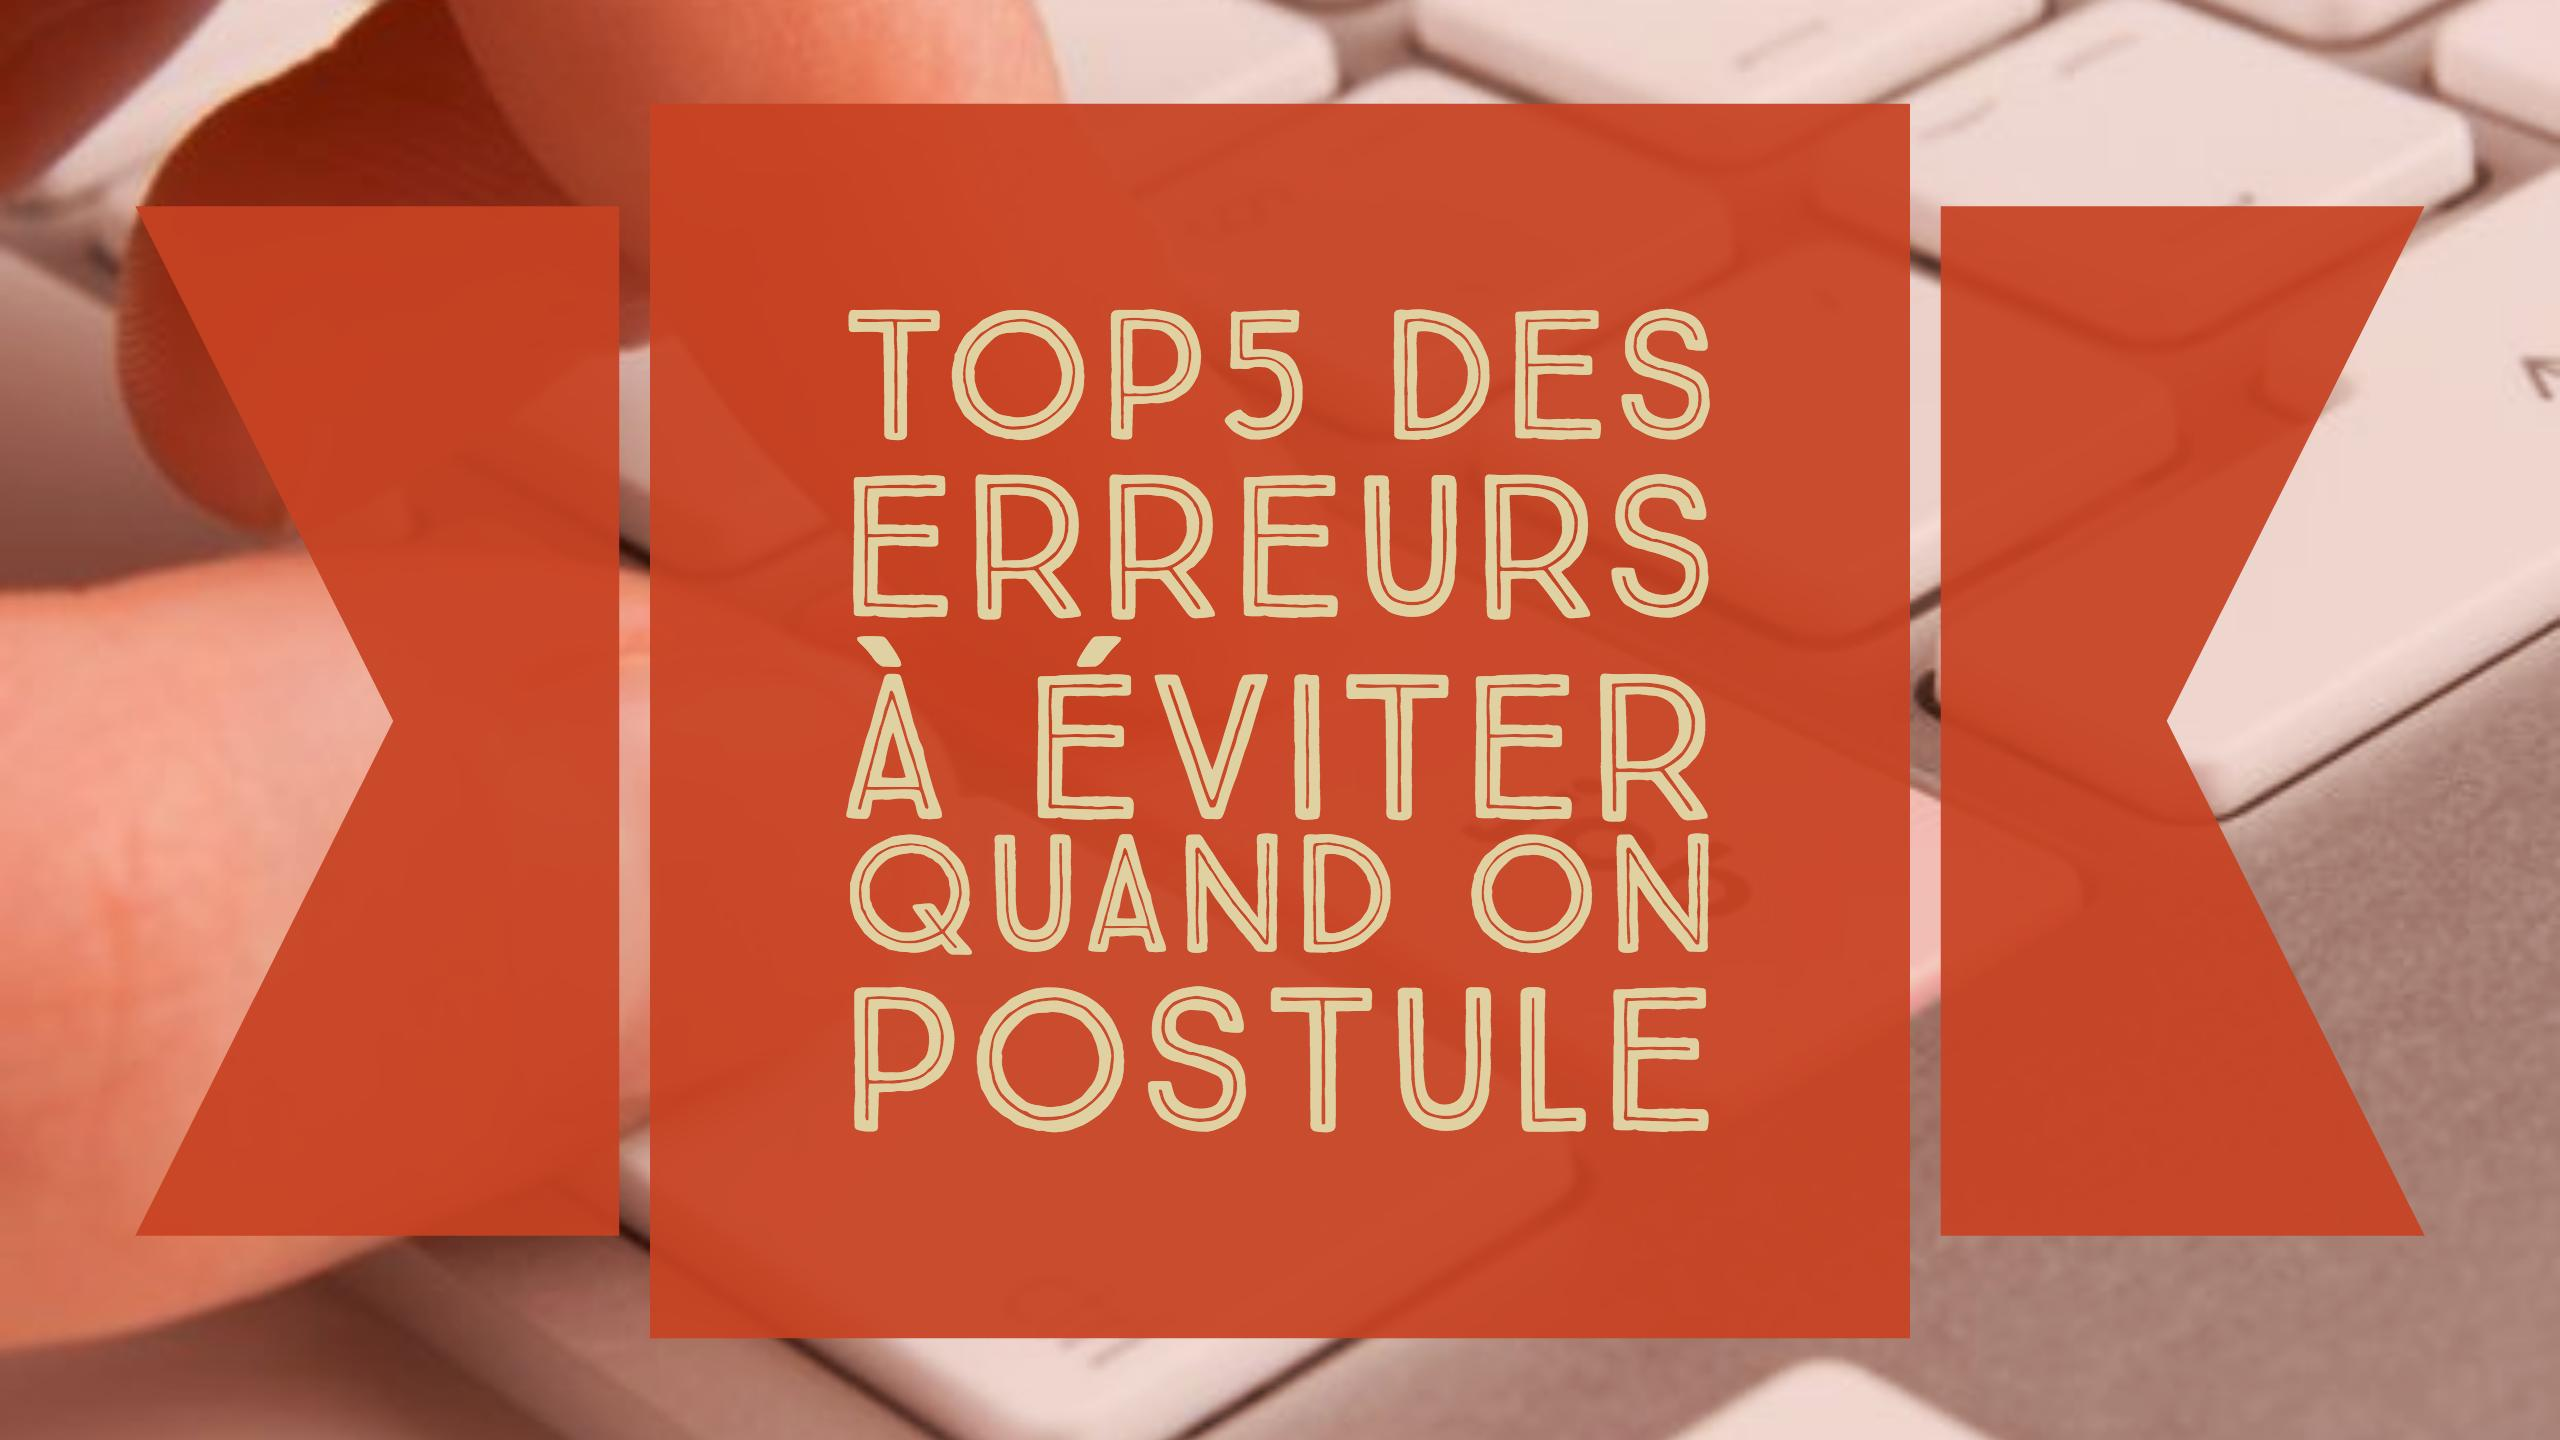 top5 des erreurs  u00e0  u00e9viter quand on postule  u2013 l u0026 39 empire